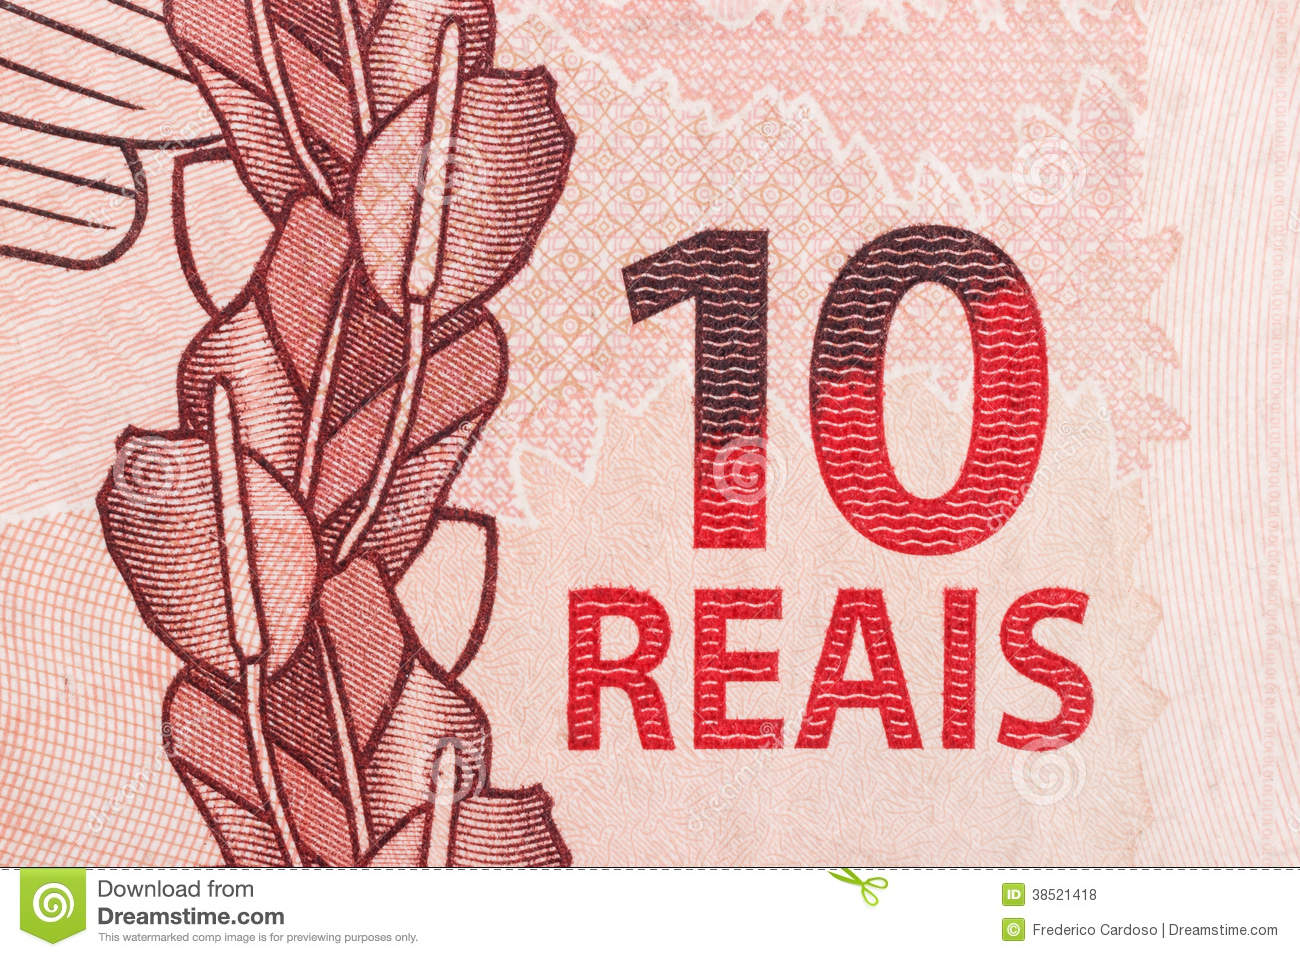 10 Reais Bill Royalty Free Stock Photos - Image: 38521418